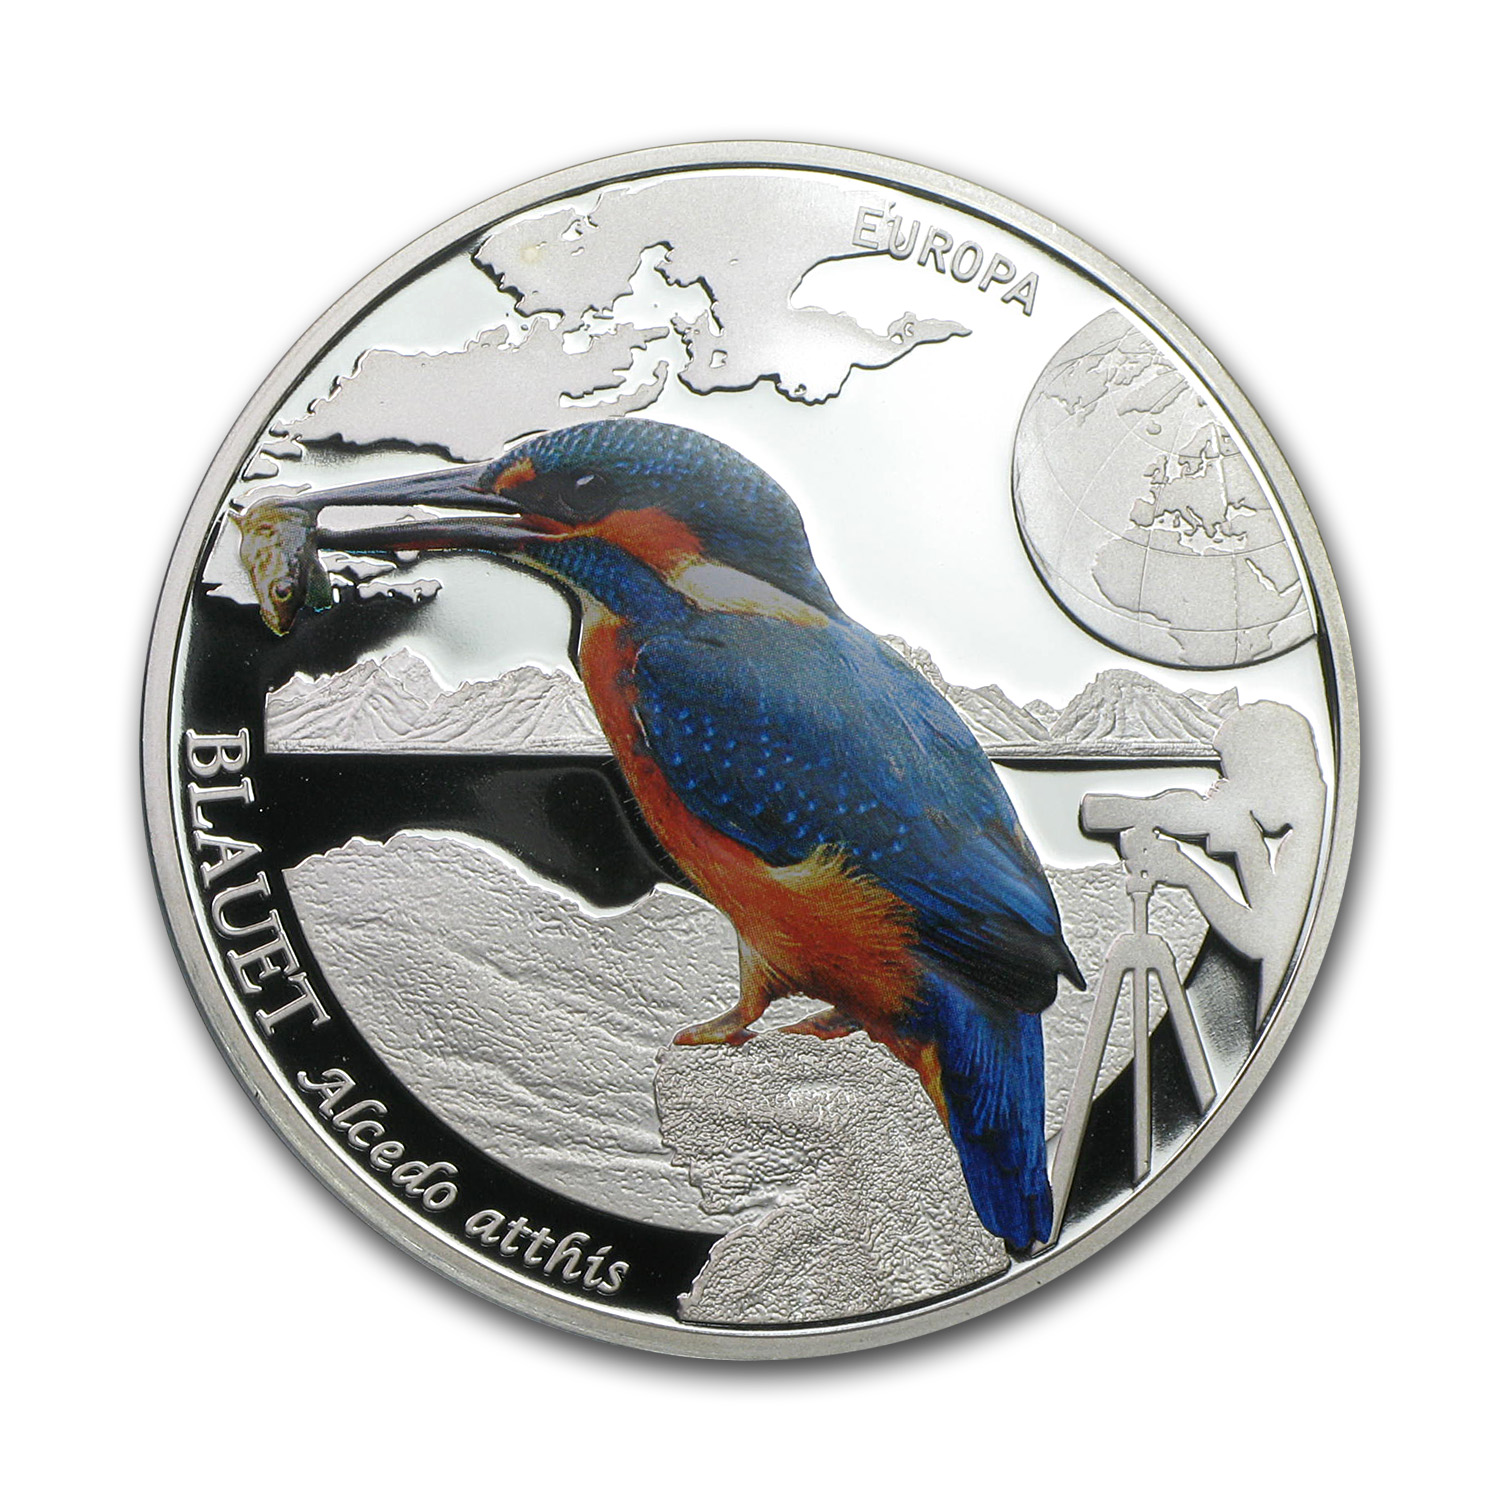 Andorra 2014 1/2 oz Silver Proof Colorful Birds (Kingfisher)